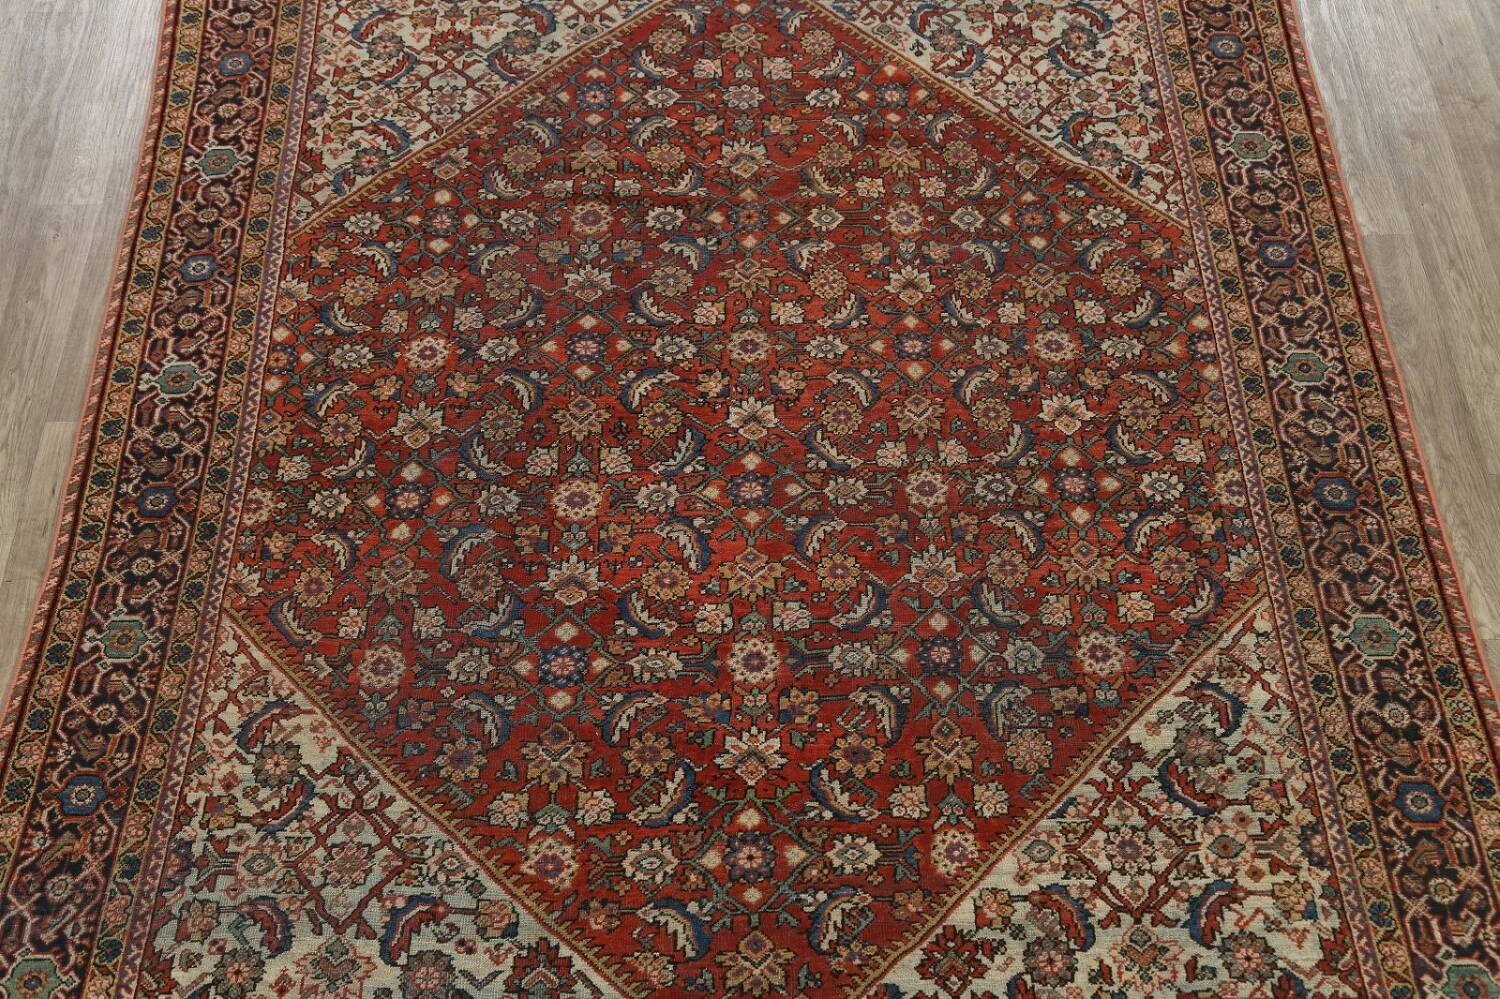 Pre-1900 Vegetable Dye Sultanabad Persian Area Rug 9x11 image 3